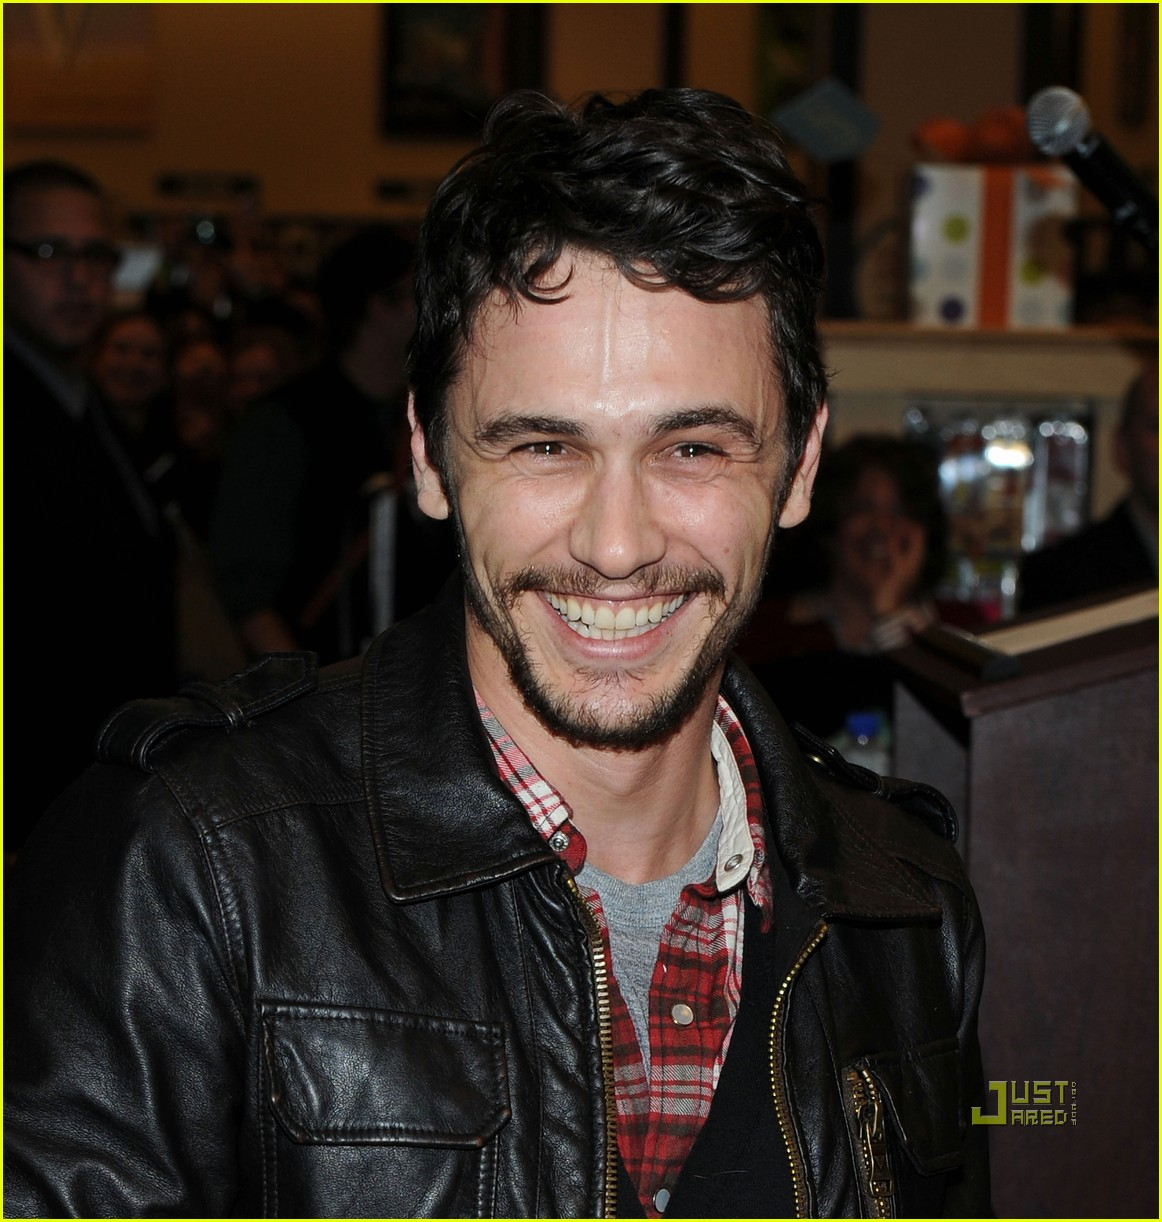 James Franco Palo Alto Signing In Nyc Photo 2489207 border=